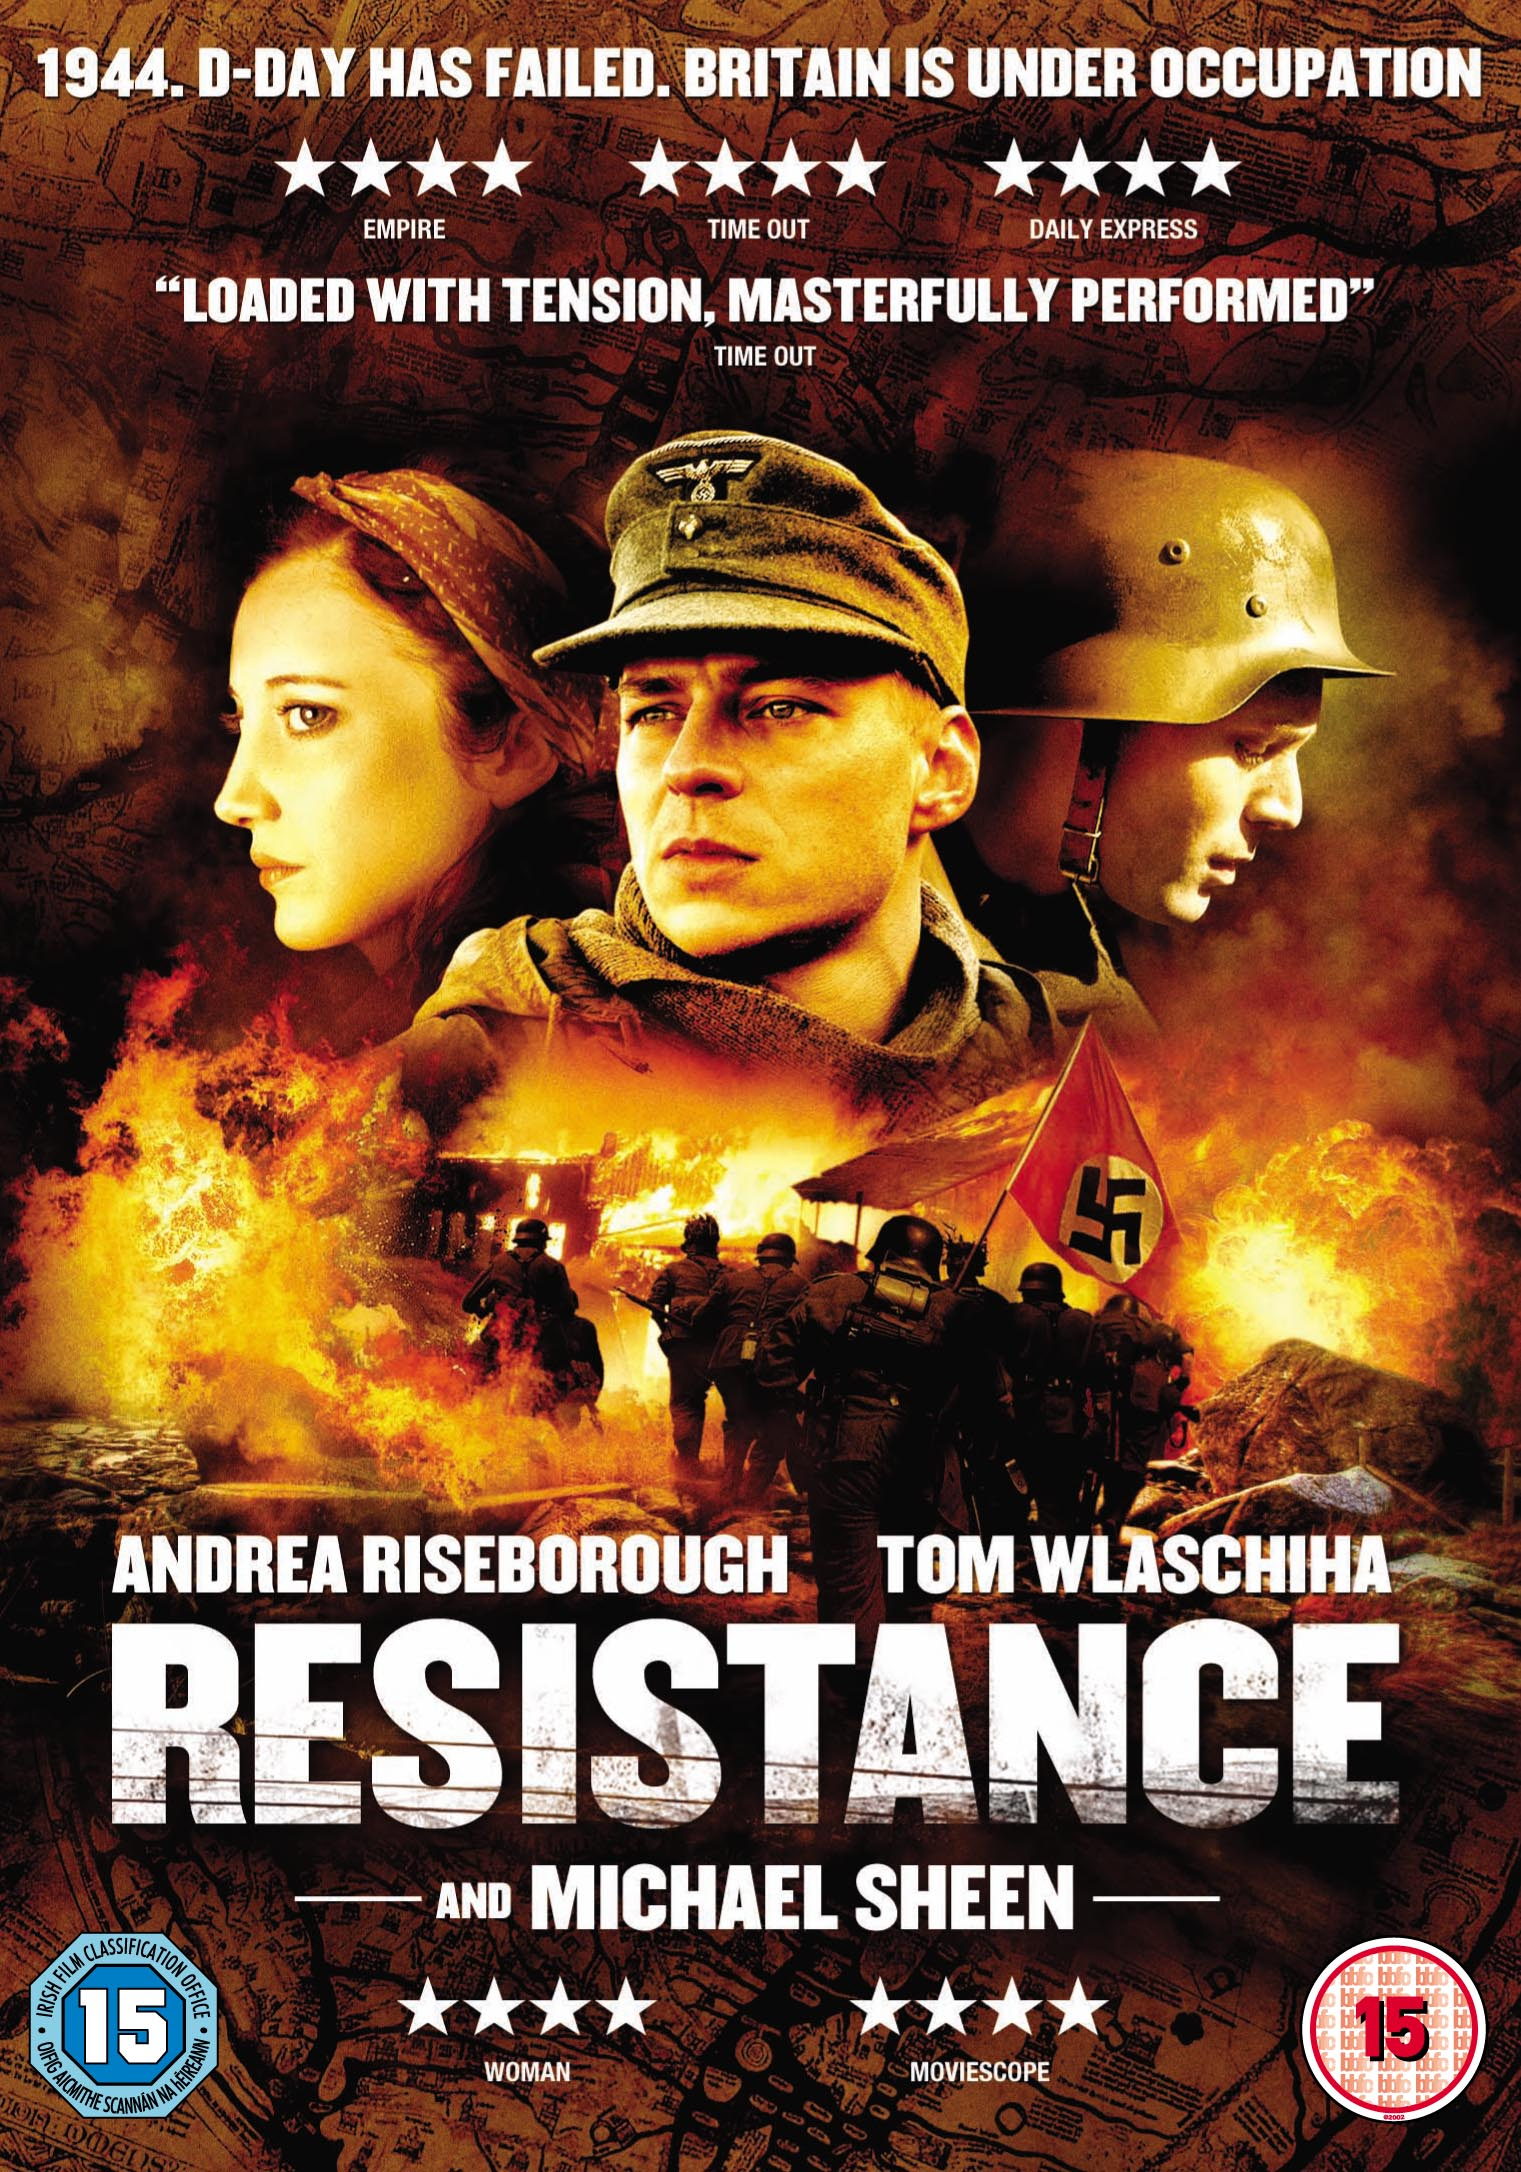 DVD Review – Resistance